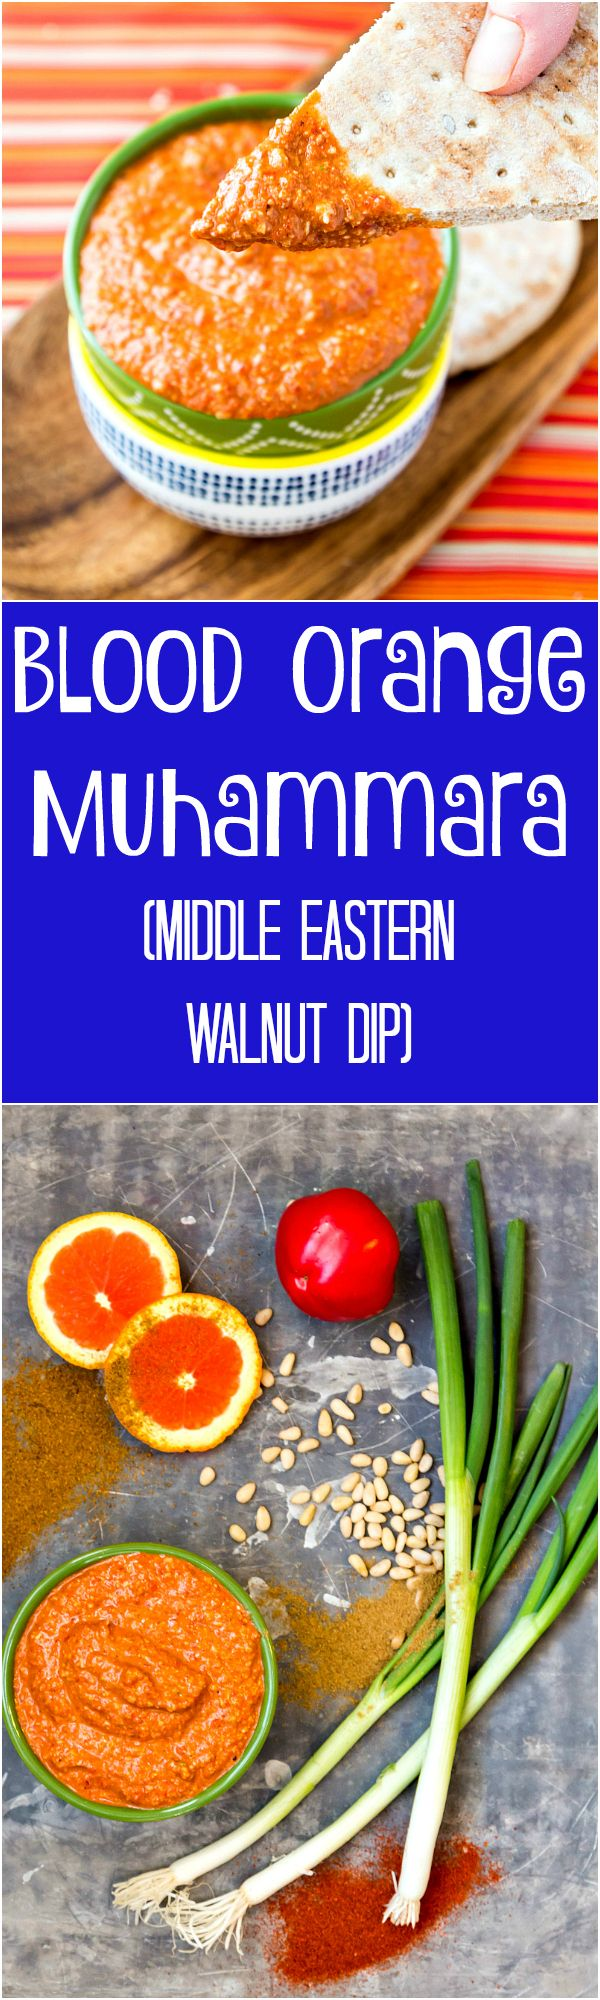 Blood orange muhammara is a citrusy variation on this traditional Moroccan walnut dip. Think of it as a spicy, tangy pesto starring red peppers and blood orange! A great appetizer recipe for a crowd! | pastrychefonline.com